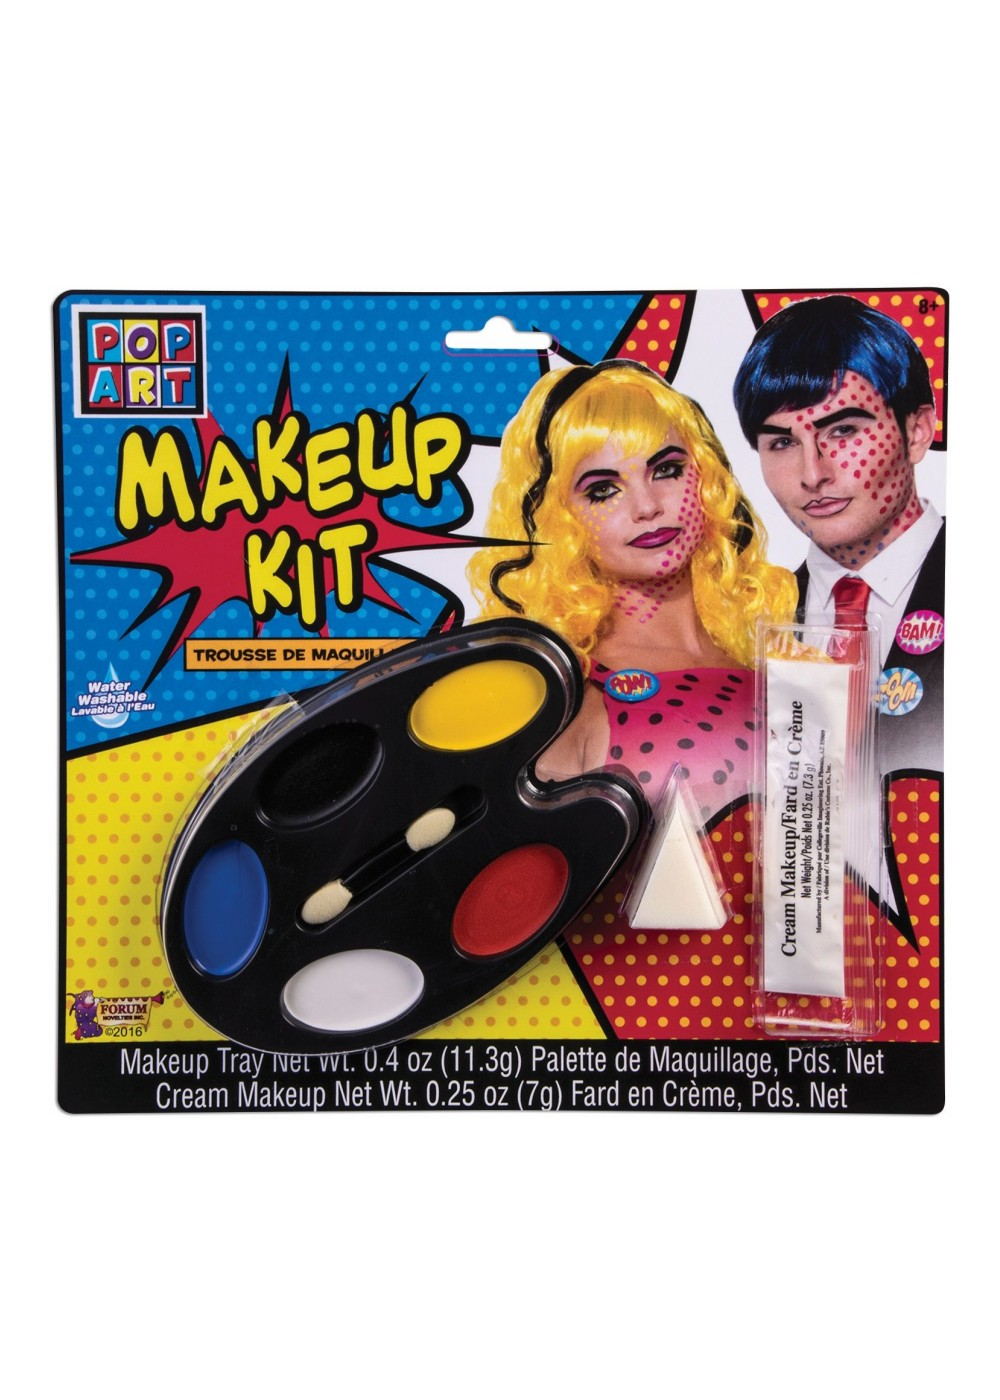 Pop Art Makeup Kit Accessories